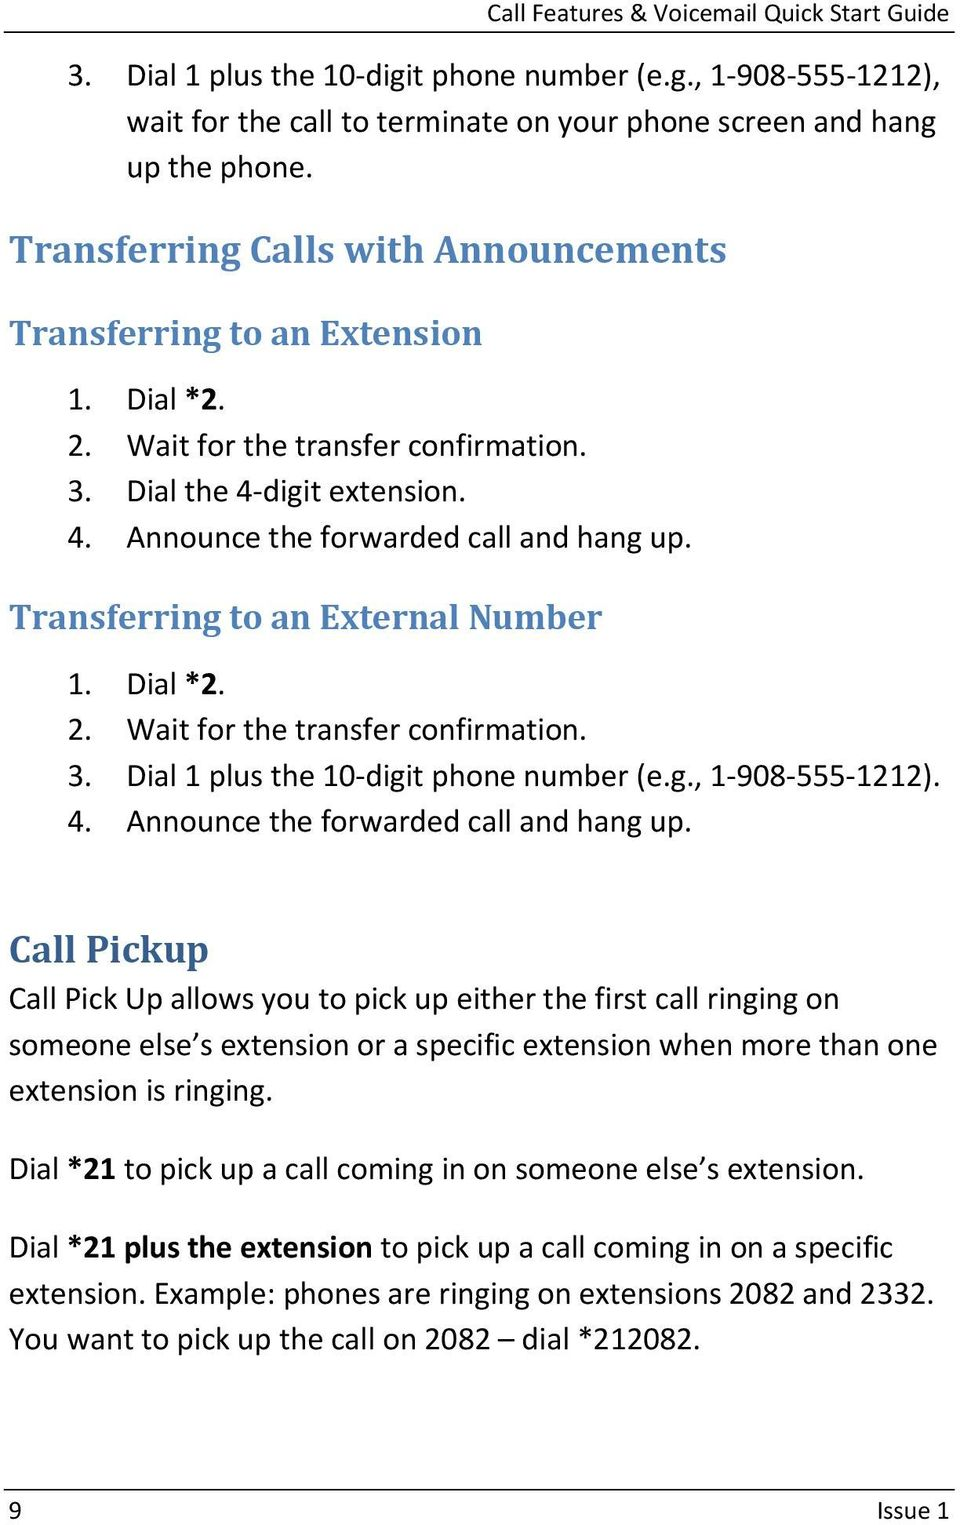 Transferring to an External Number 1. Dial *2. 2. Wait for the transfer confirmation. 3. Dial 1 plus the 10 digit phone number (e.g., 1 908 555 1212). 4. Announce the forwarded call and hang up.